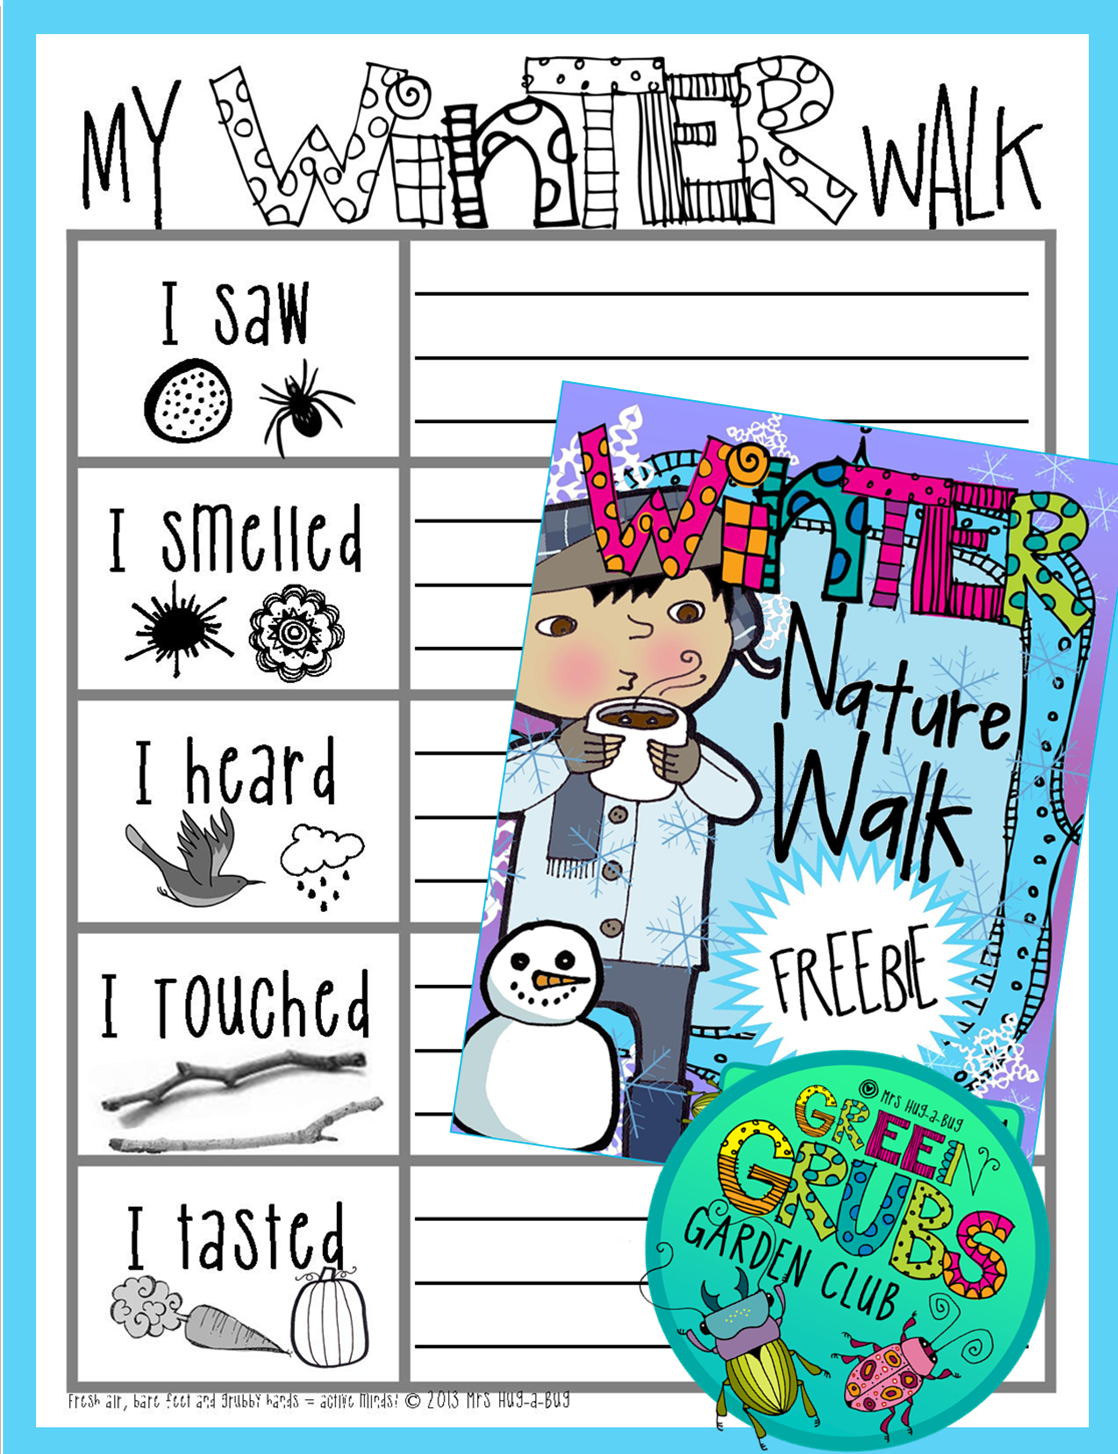 Winter Nature Walk Freebie Learning Themes Study On Electricity It Walks Kids Through The Of And Get Your Bundled Up In Some Warm Clothes Grab Magnifying Glasses Head Outside For A This Is Fun Activity